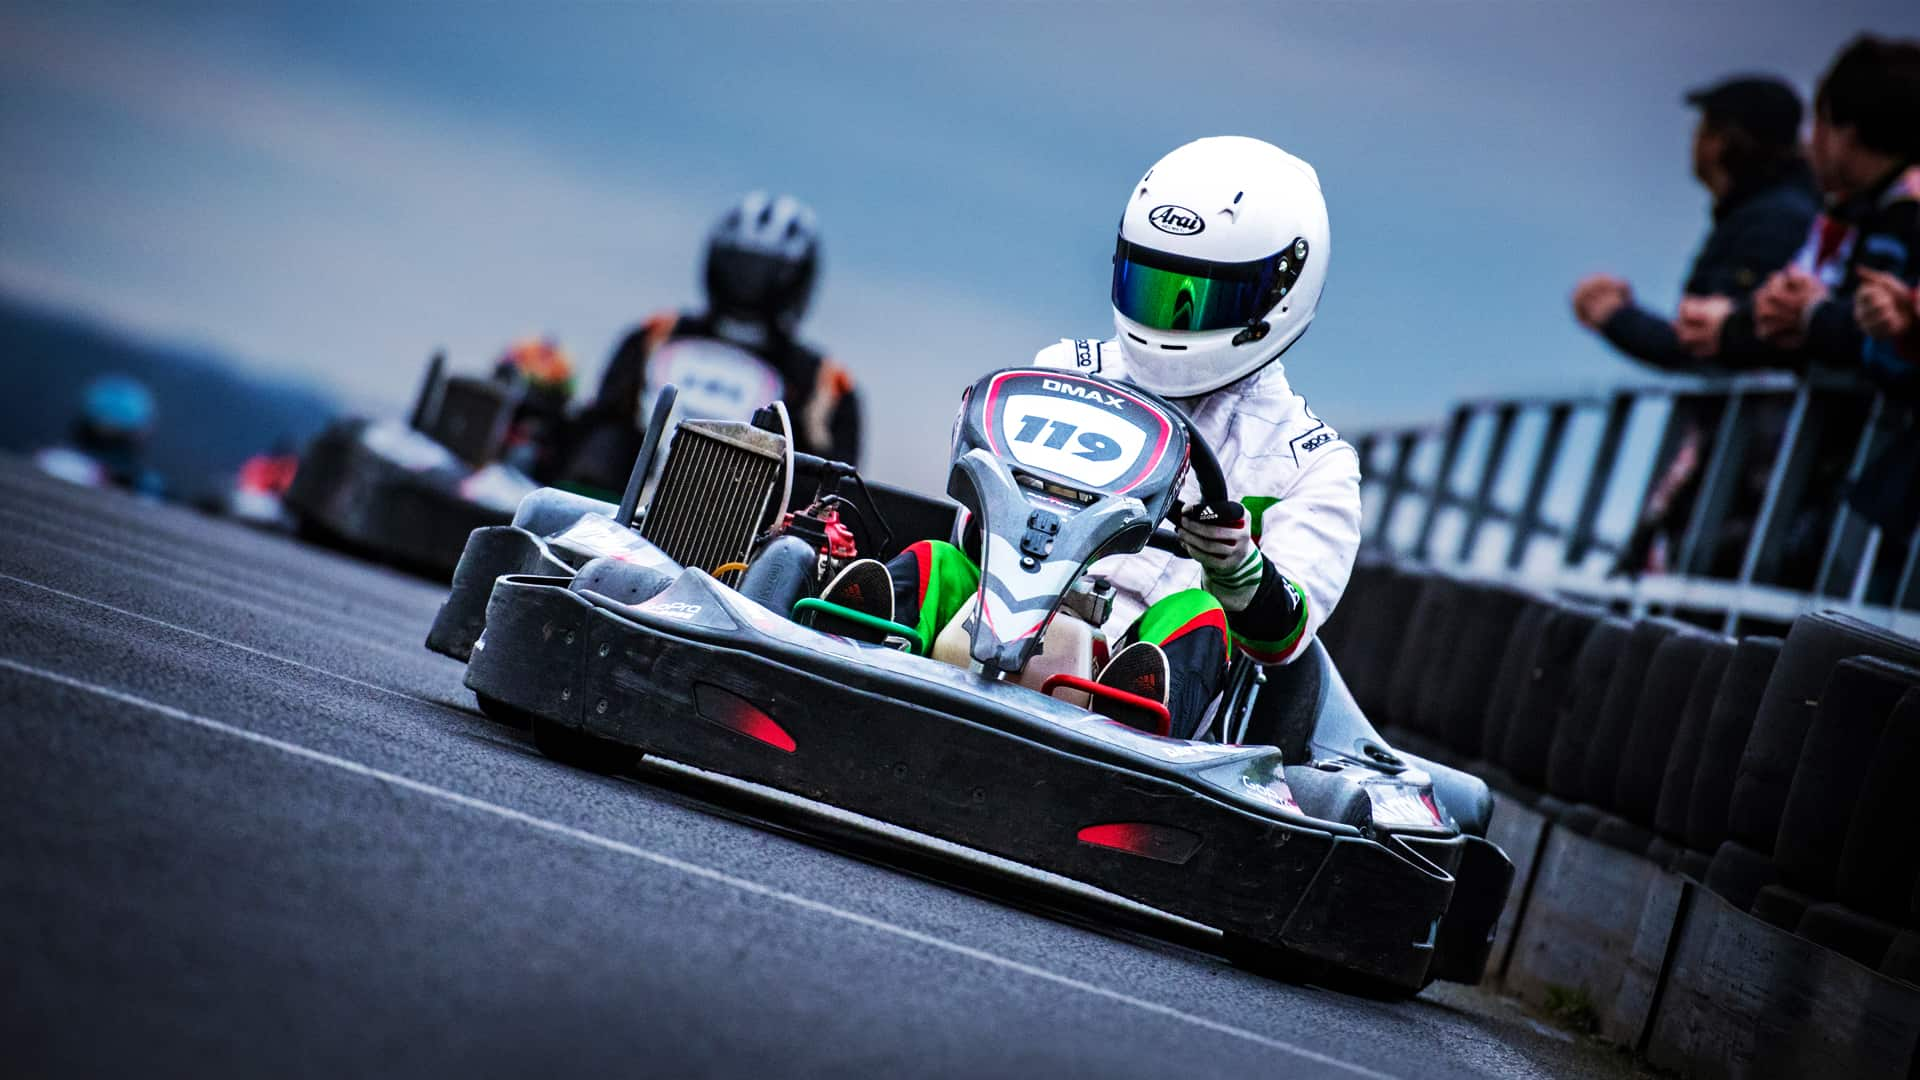 15TH MARCH | FIRST SODI WORLD SERIES RACE DAY